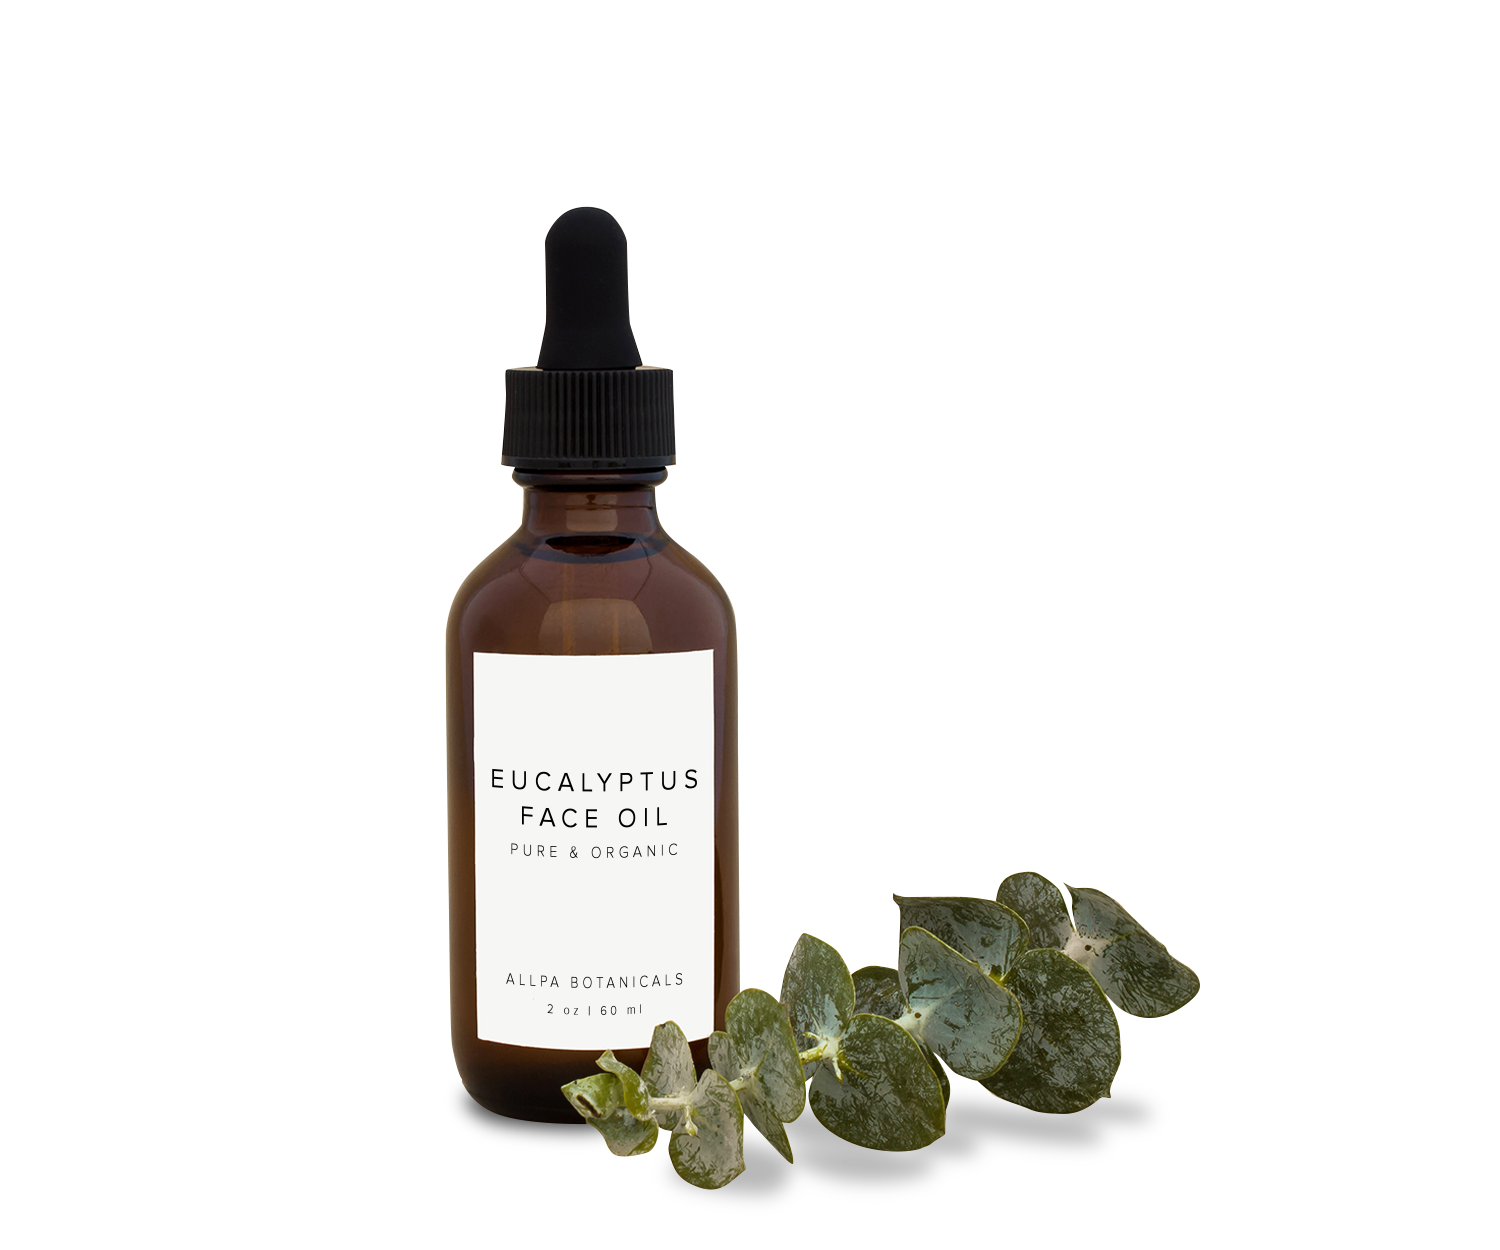 Eucalyptus Face Oil